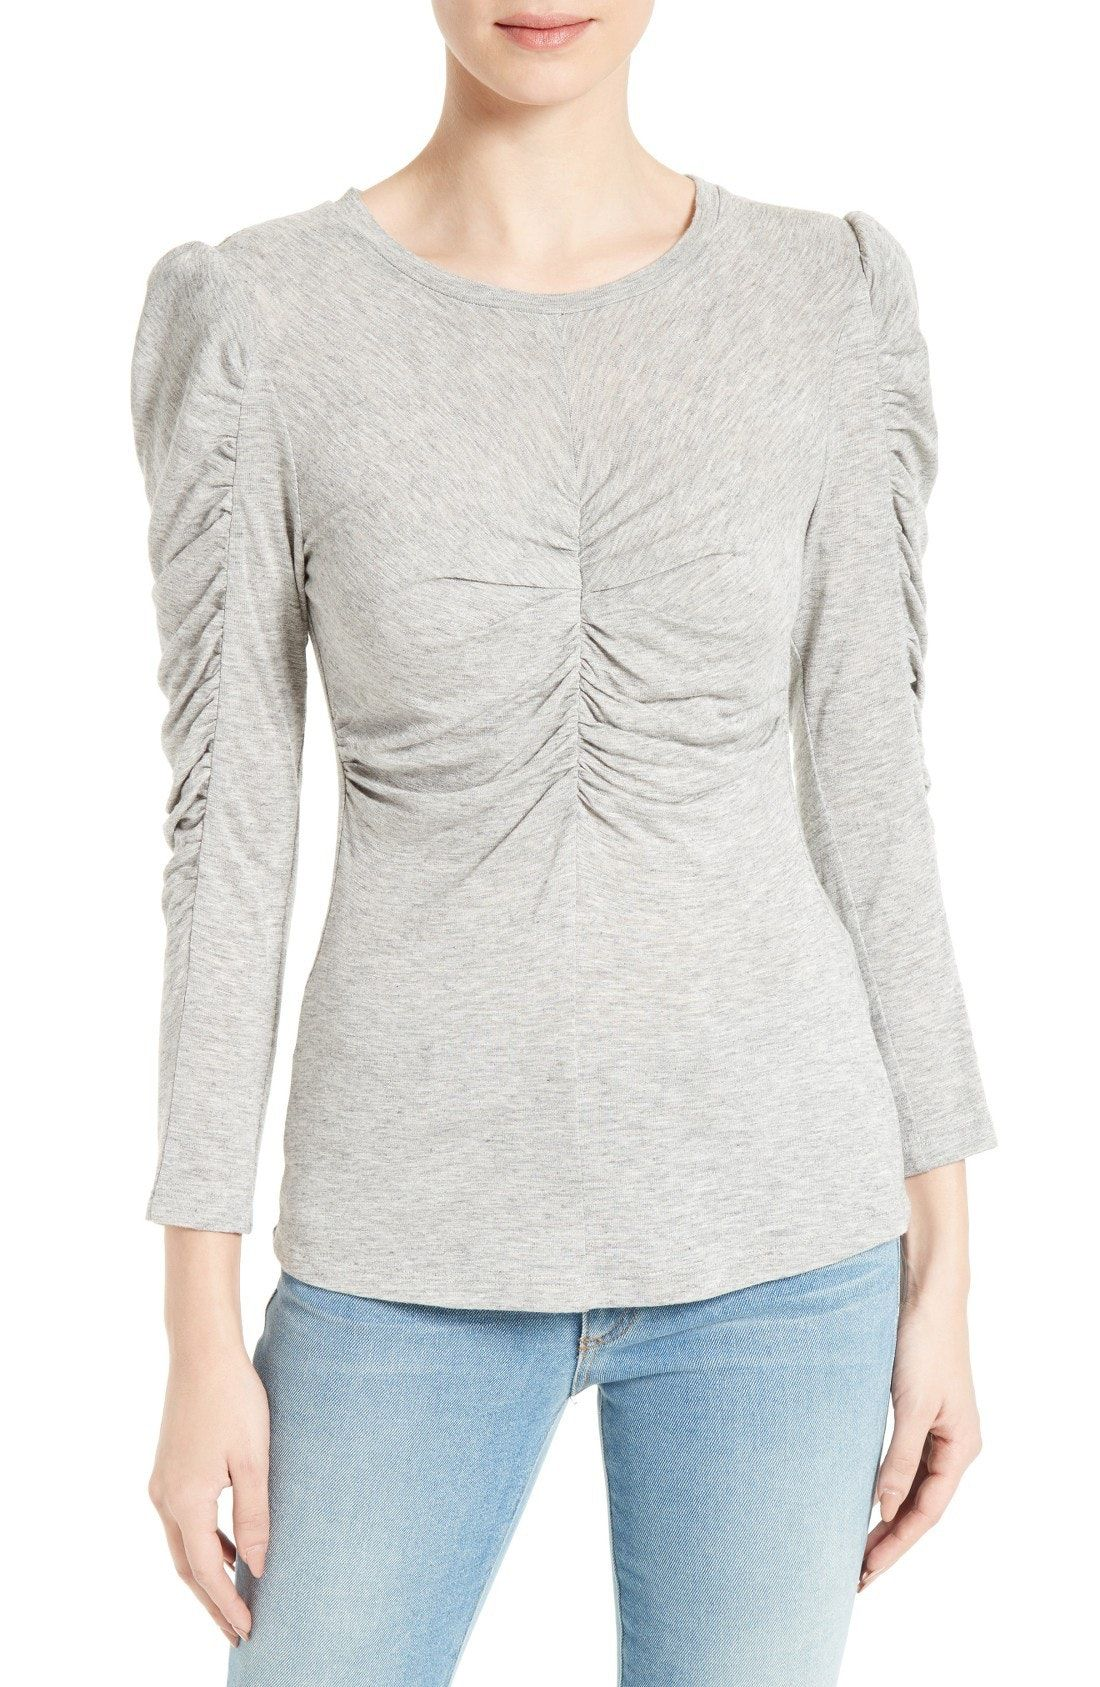 ccb7bf18b30a6 New Rebecca Taylor Ruched Tee ARMY fashion online.   77.98  new offer from  Newtstyle Shop